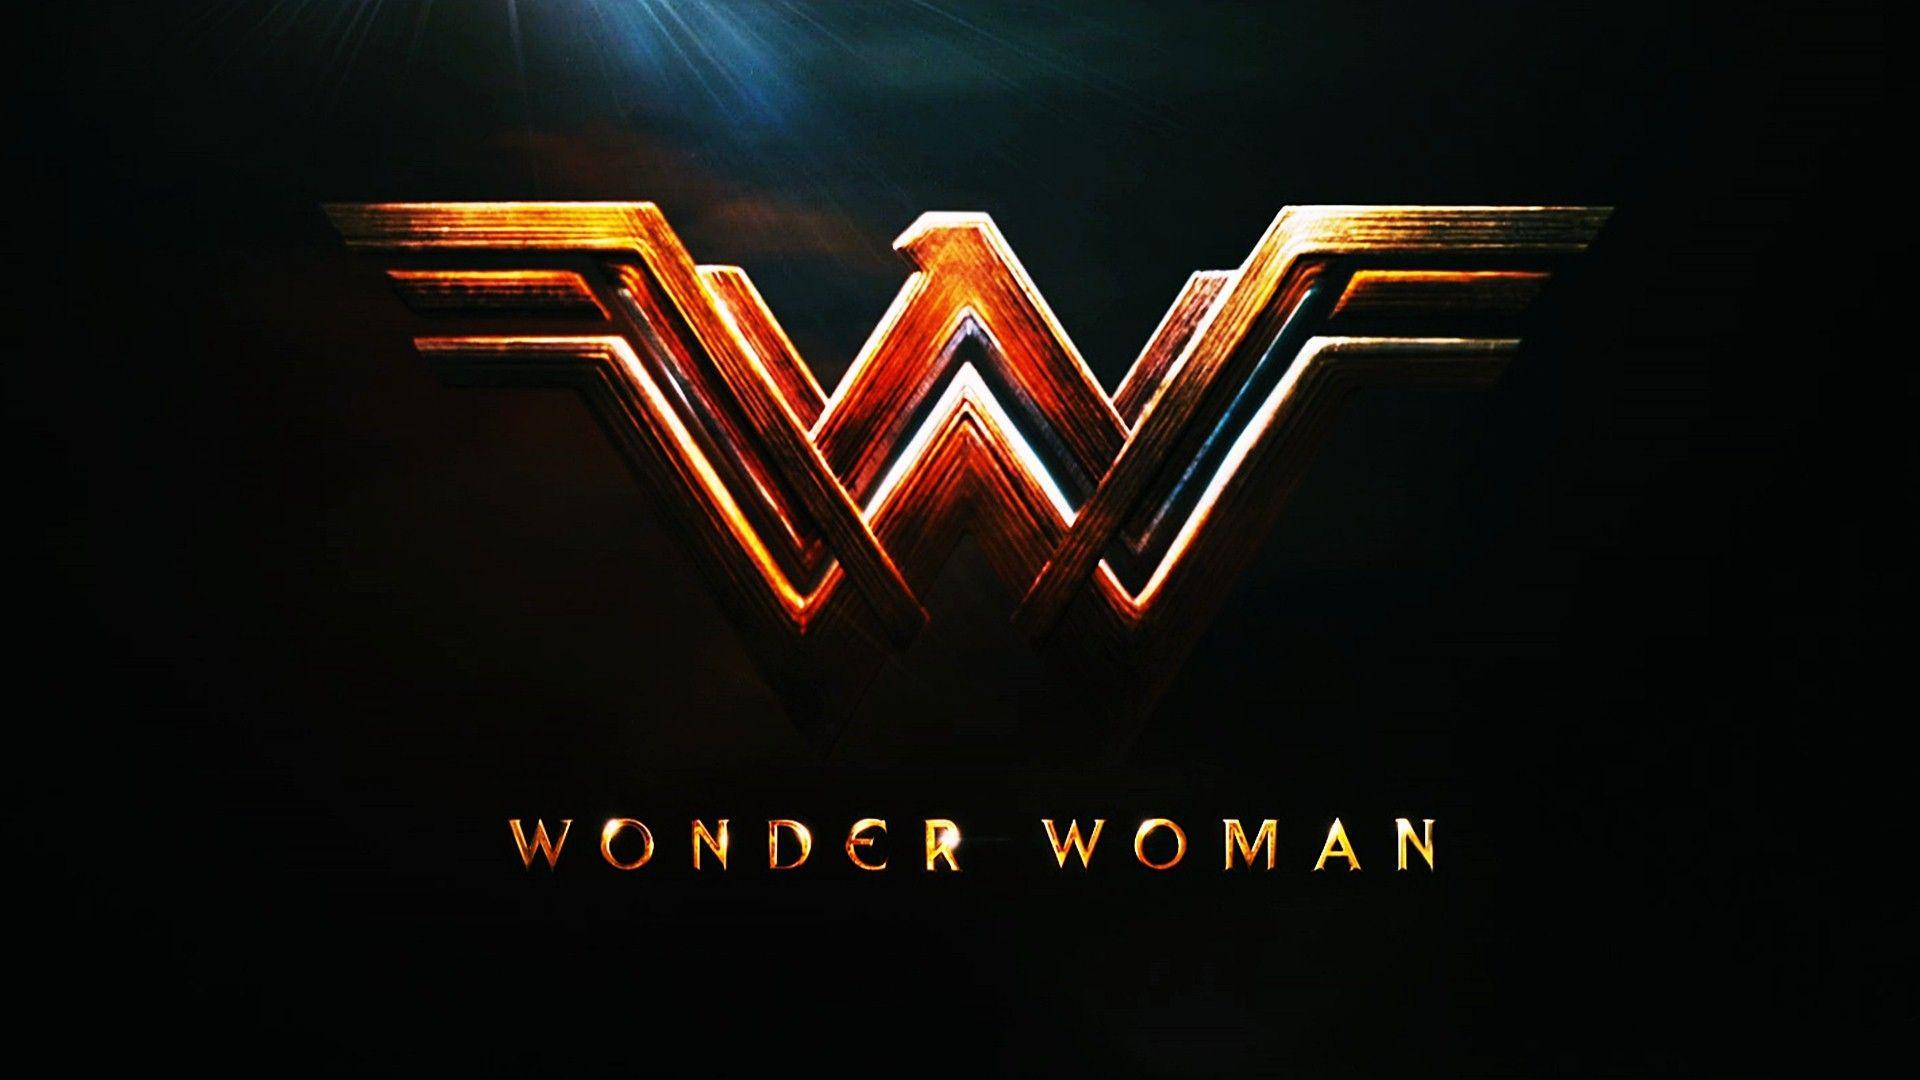 Wonder Woman Logo Mobile Wallpapers Wallpaper Cave